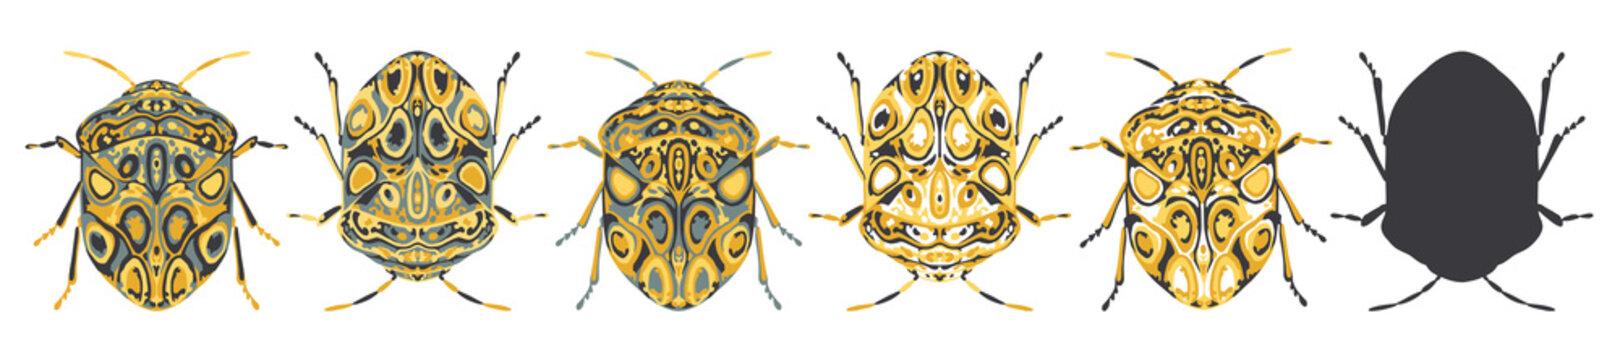 Set of stylised, decorative beetle insect vector illustrations, isolated on a white background.